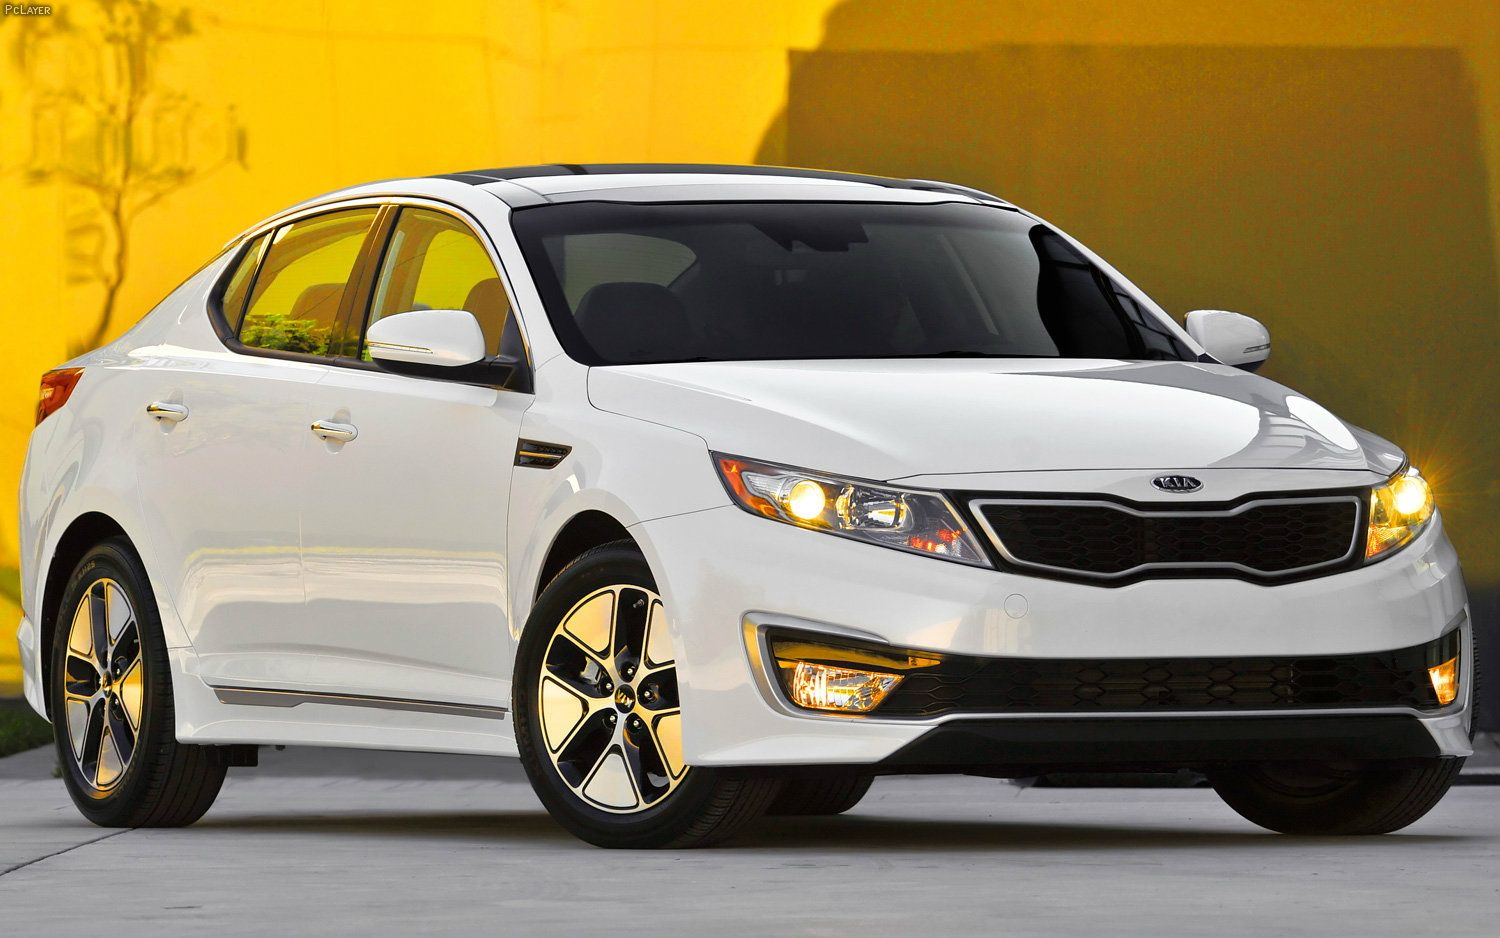 Kia Cars Kia Optima Hybrid Car 2013 2014 Price In Pakistan